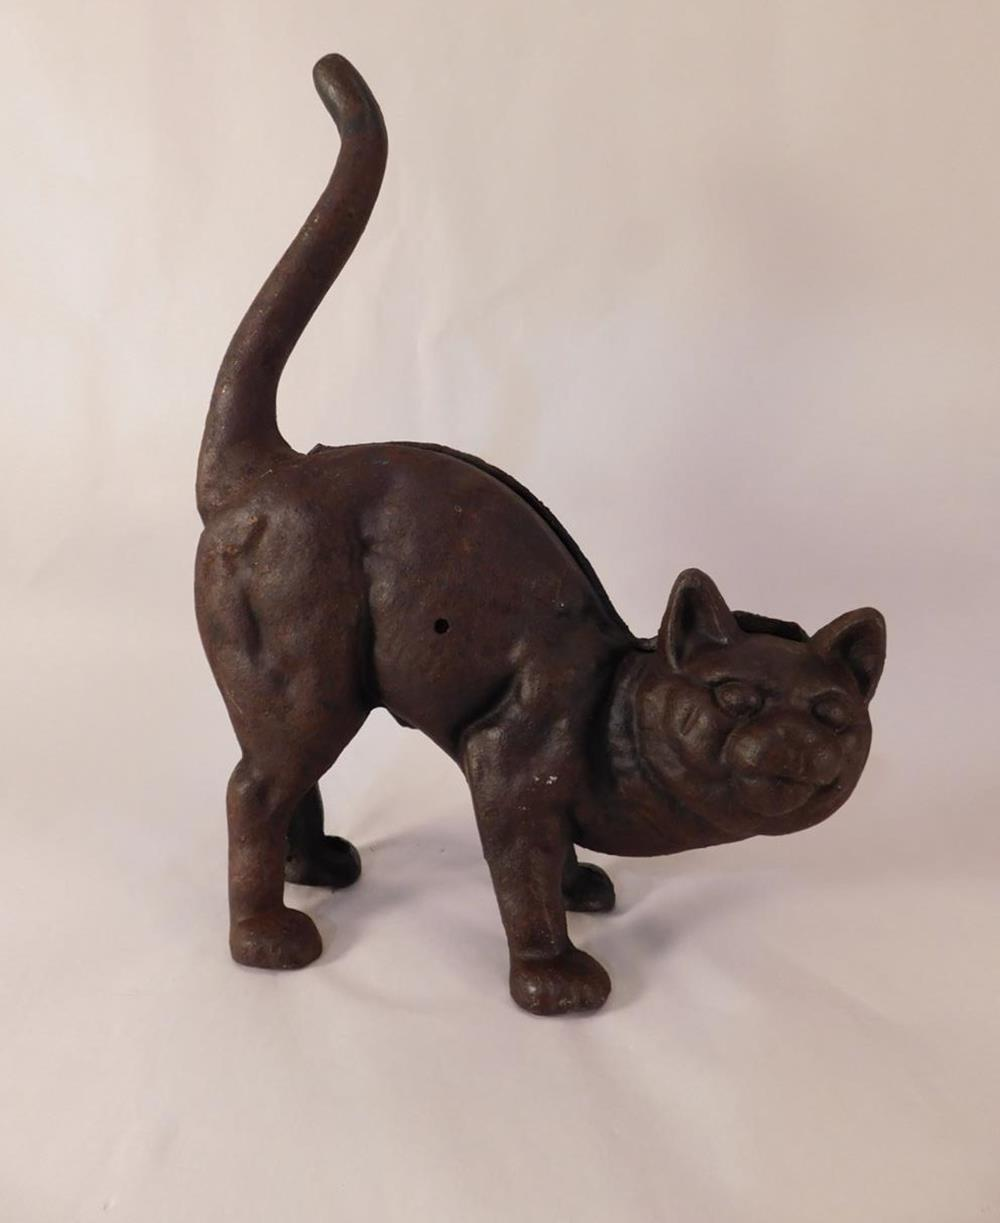 SCAREDY CAT VINTAGE CAST IRON CAT DOORSTOP HALLOWEEN ANTIQUE